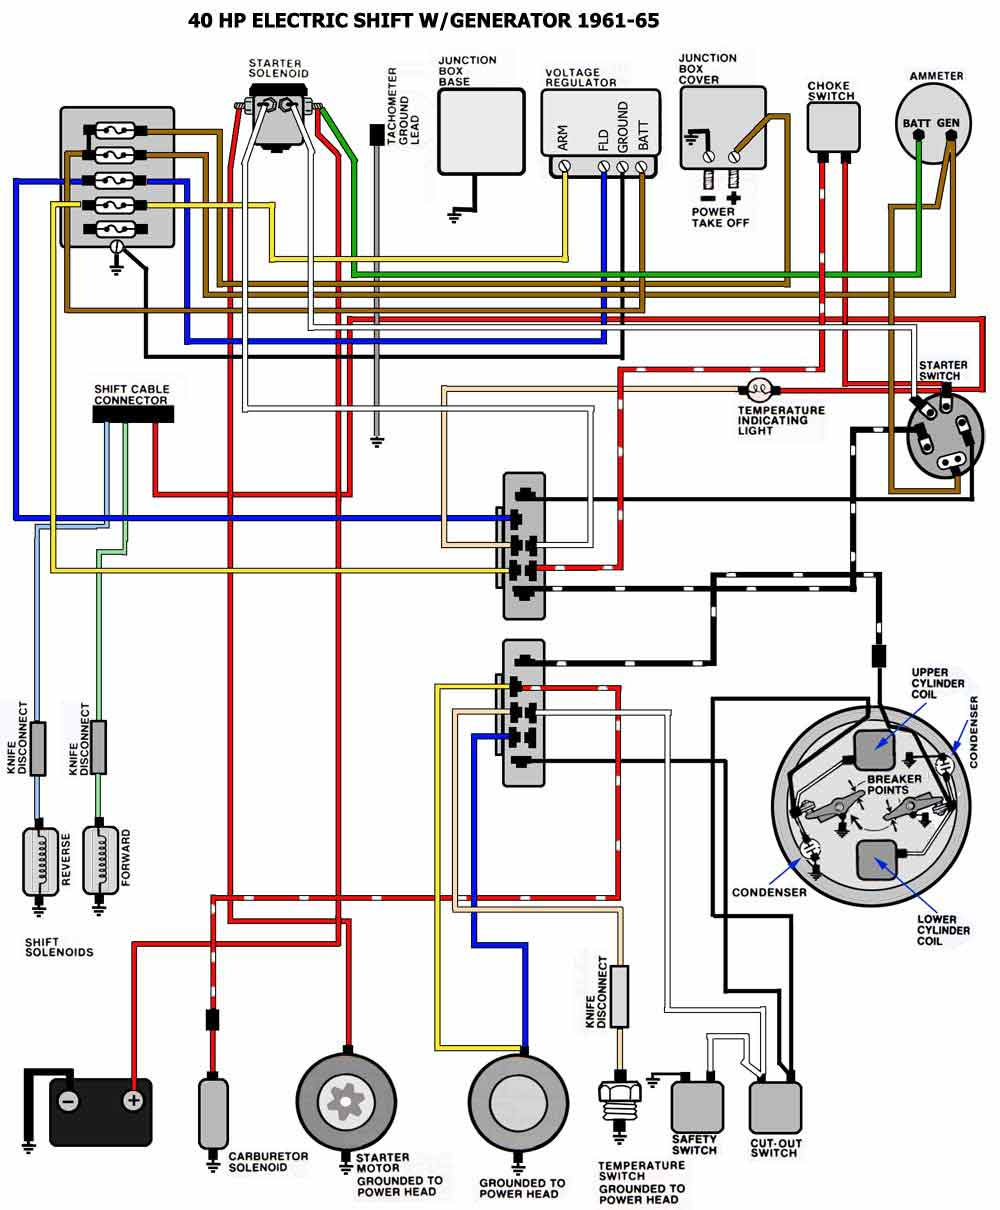 Evinrude Etec Ignition Switch Wiring Diagram from maxrules.com